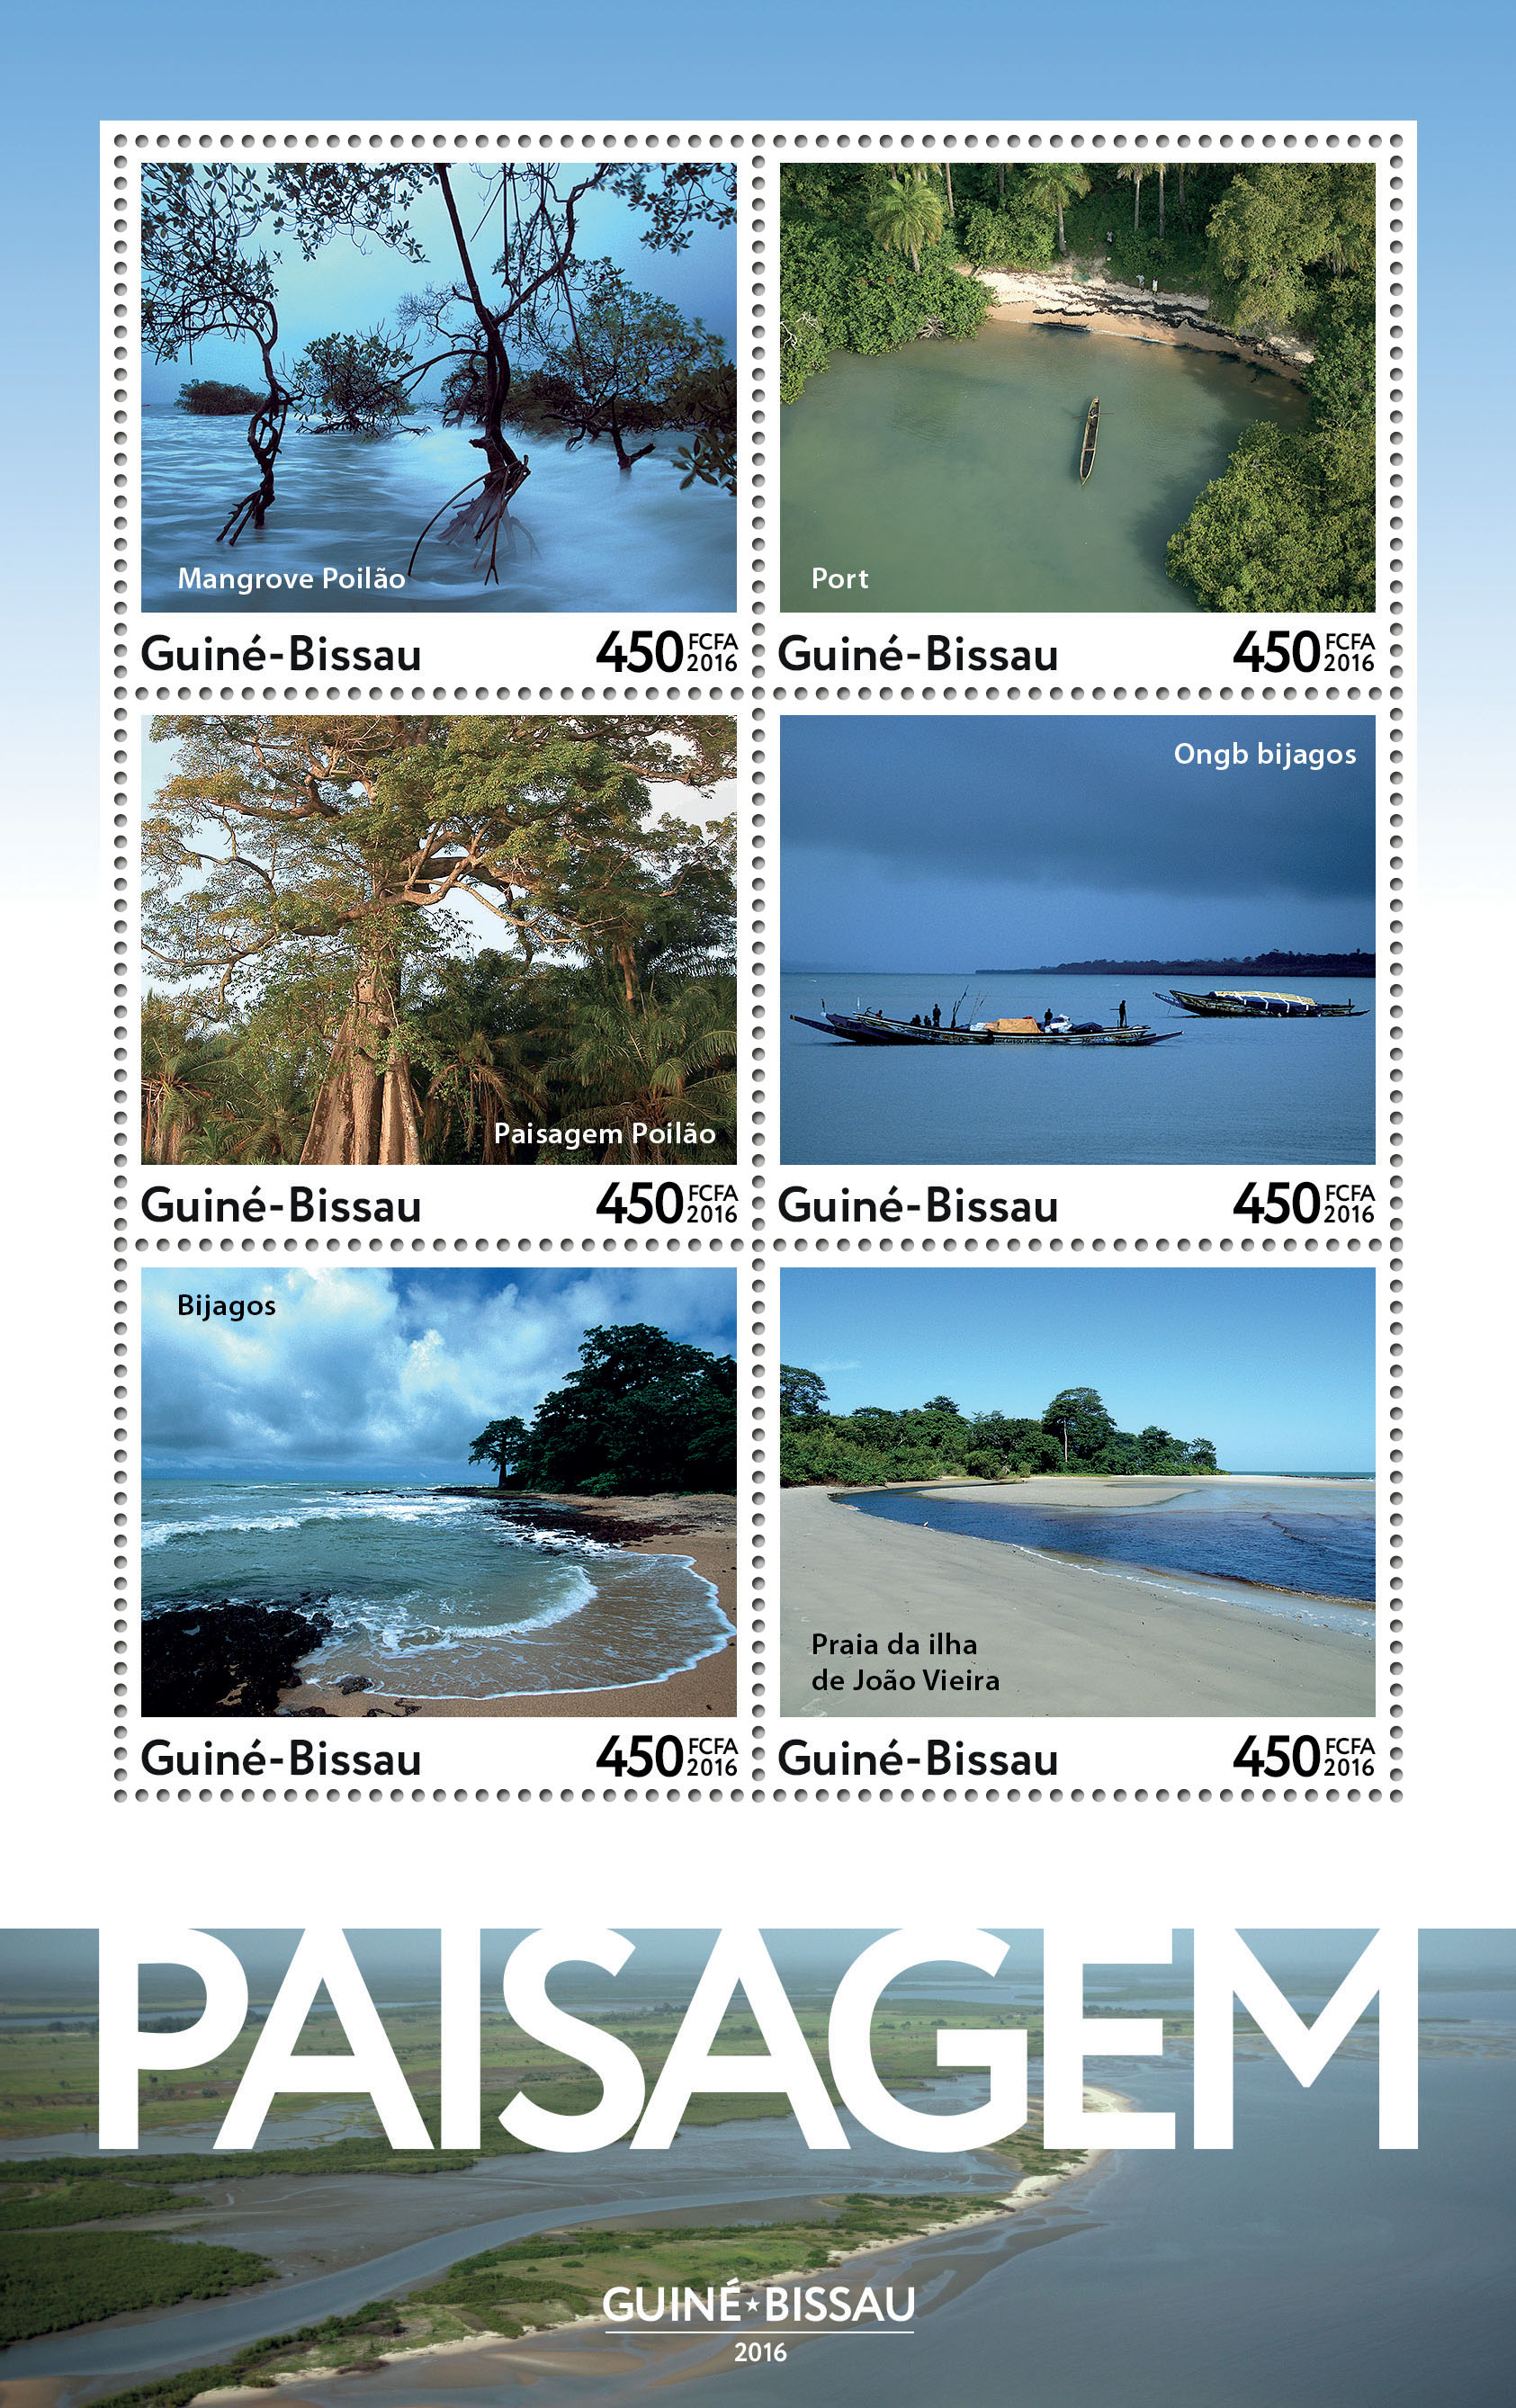 Landscapes 6v - Issue of Guinée-Bissau postage stamps